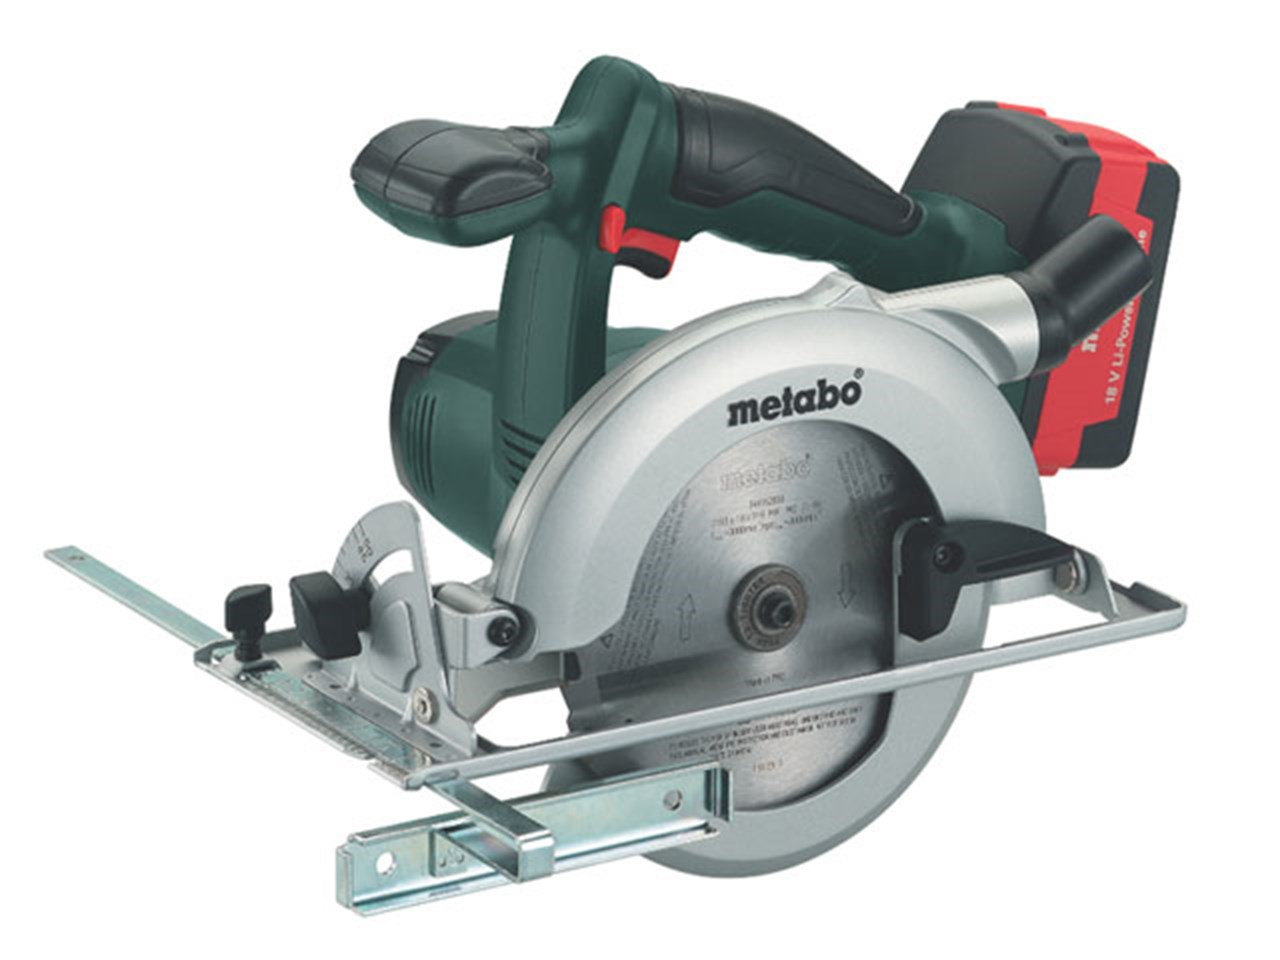 metabo ksa18ltx 18v cordless circular saw kit 2 x 4 0ah li ion. Black Bedroom Furniture Sets. Home Design Ideas